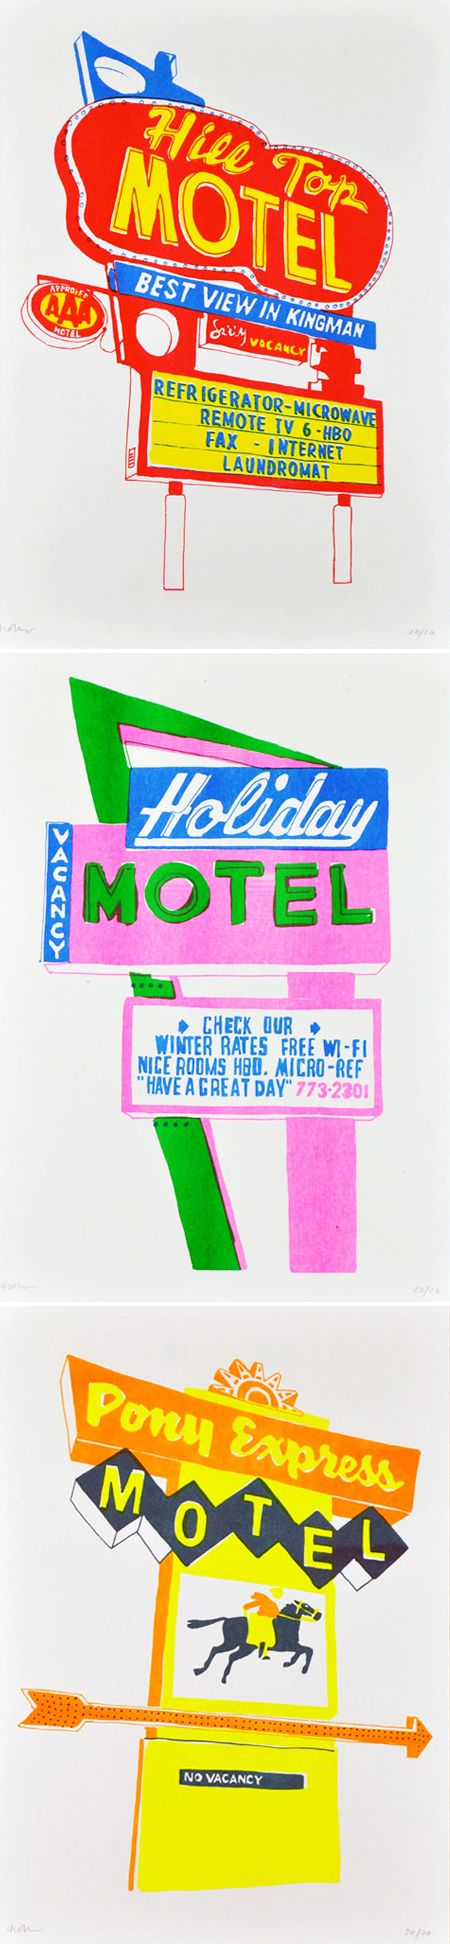 motel signs by holly wales {felt tip marker!}